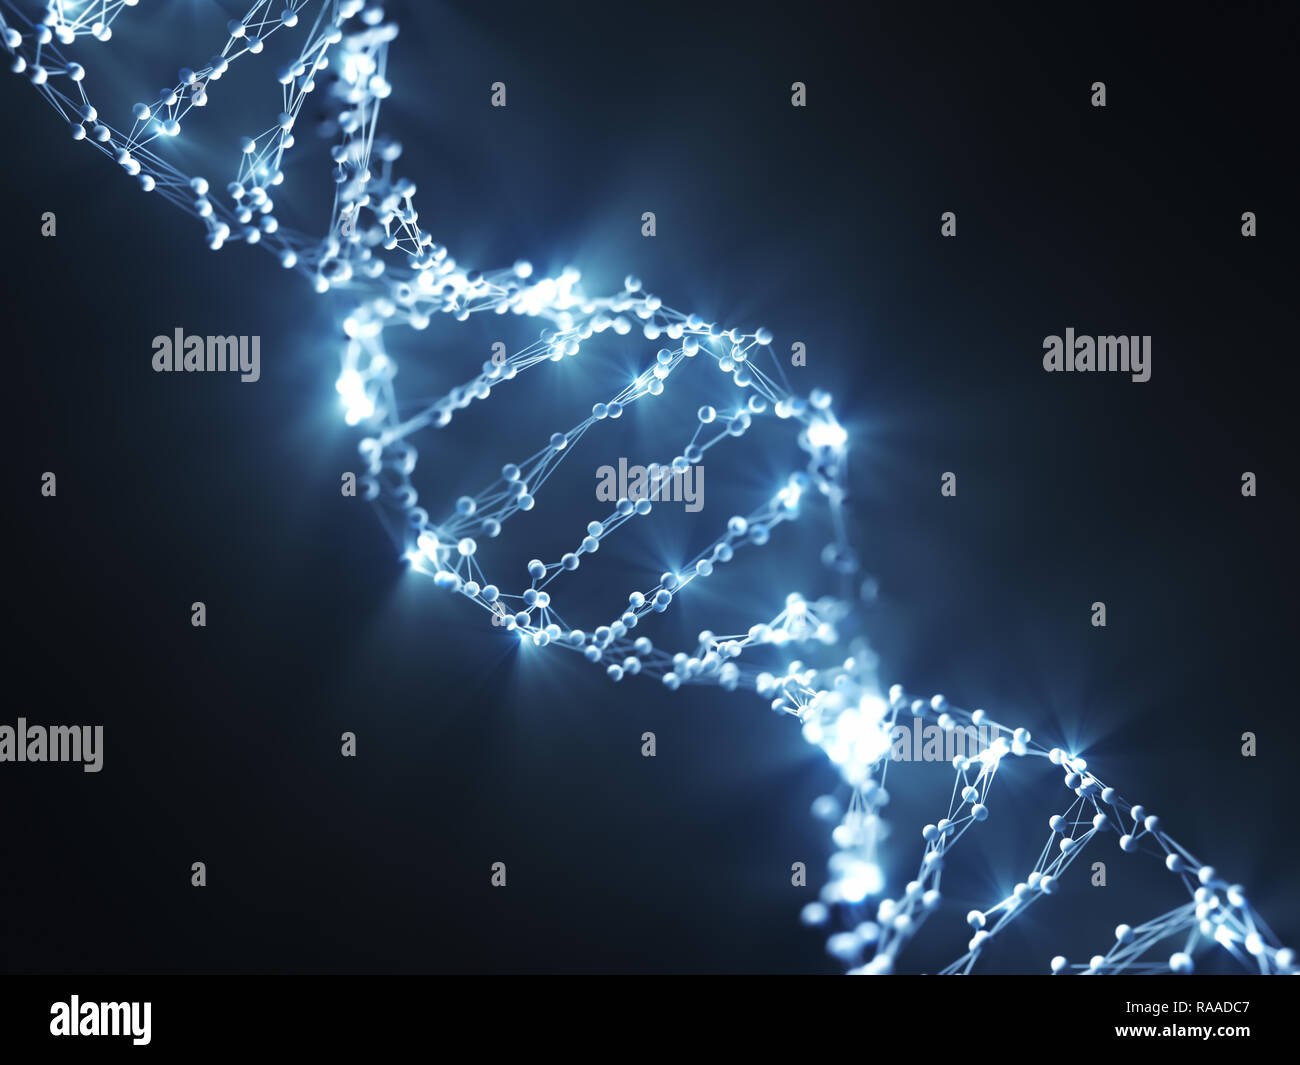 Deoxyribonucleic acid (DNA), molecule that carries the genetic code. 3D illustration, science concept image. - Stock Image